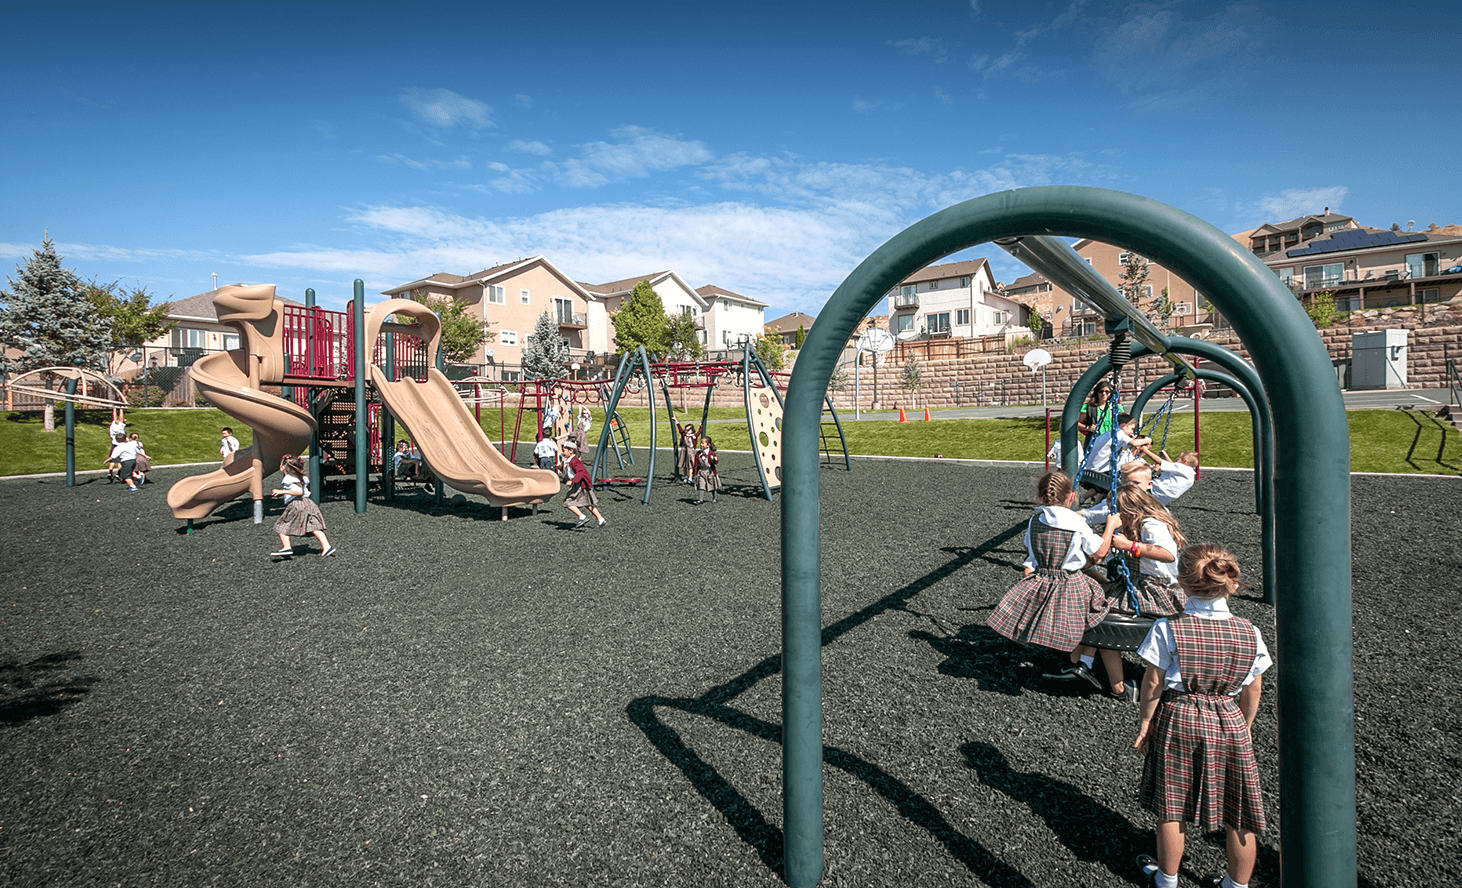 Playground Swings | Challenger School - Traverse Mountain | Private School In Lehi, Utah